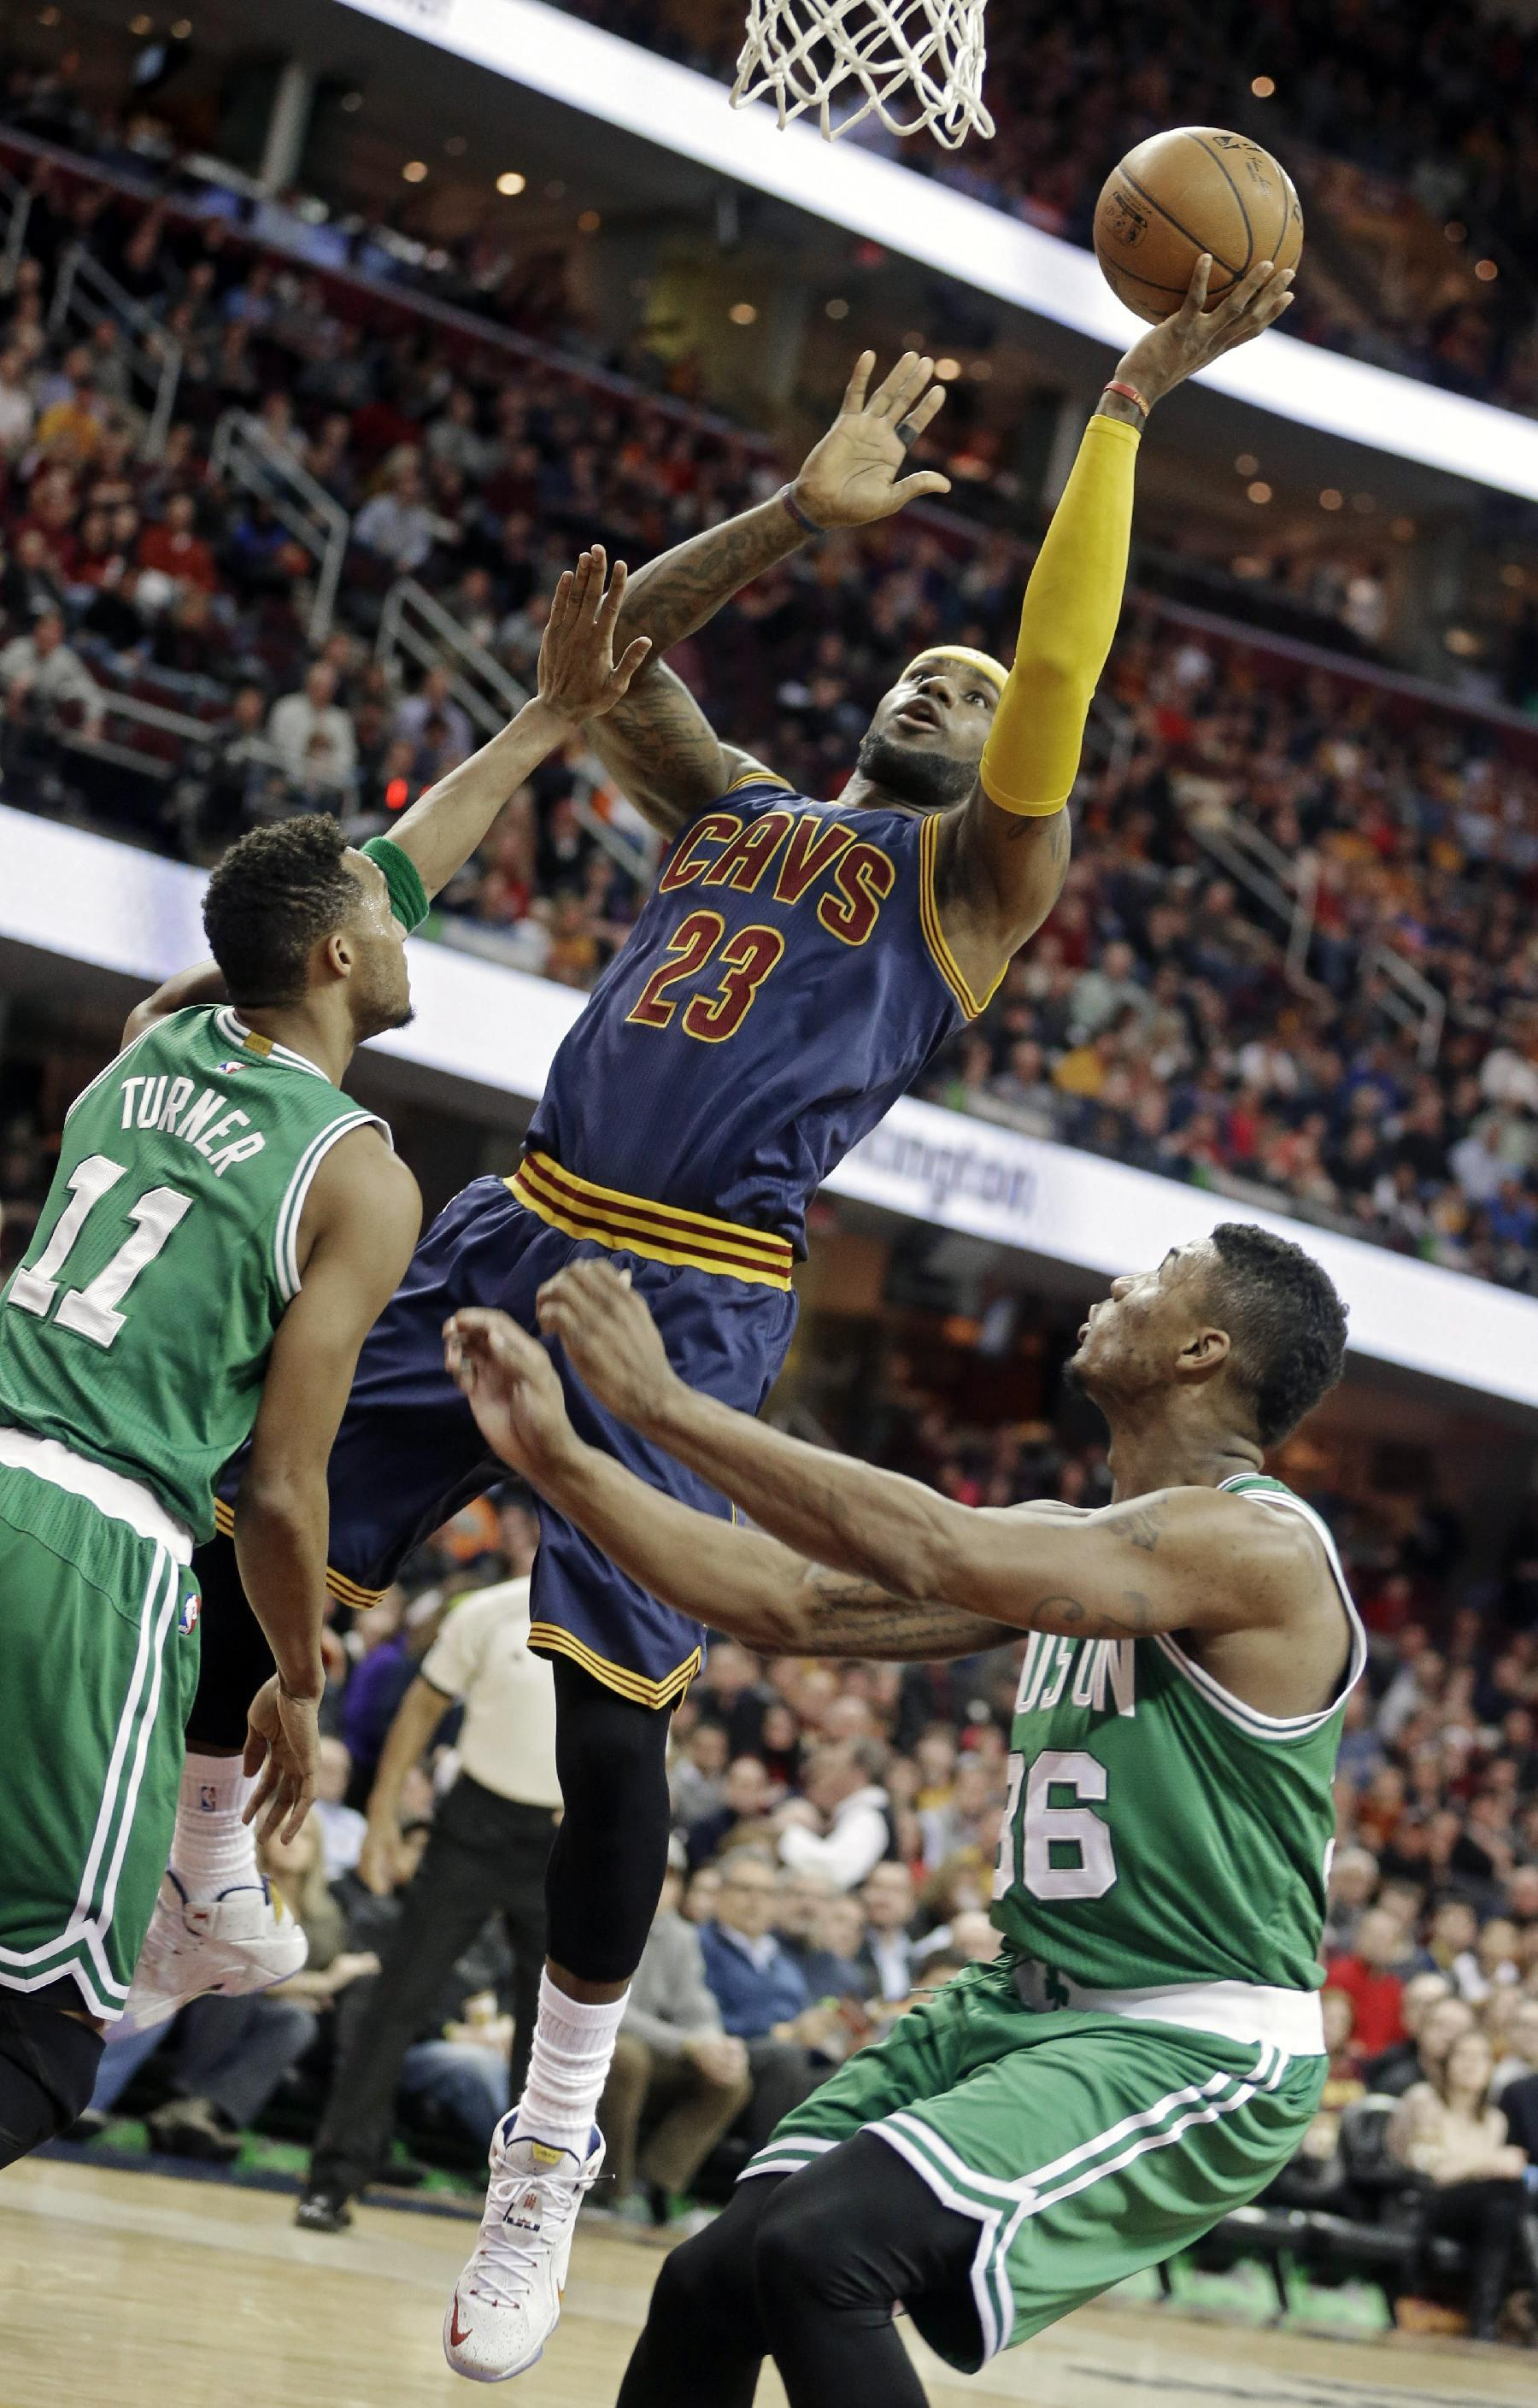 James scores 27 on milestone night, Cavs cruise past Celtics